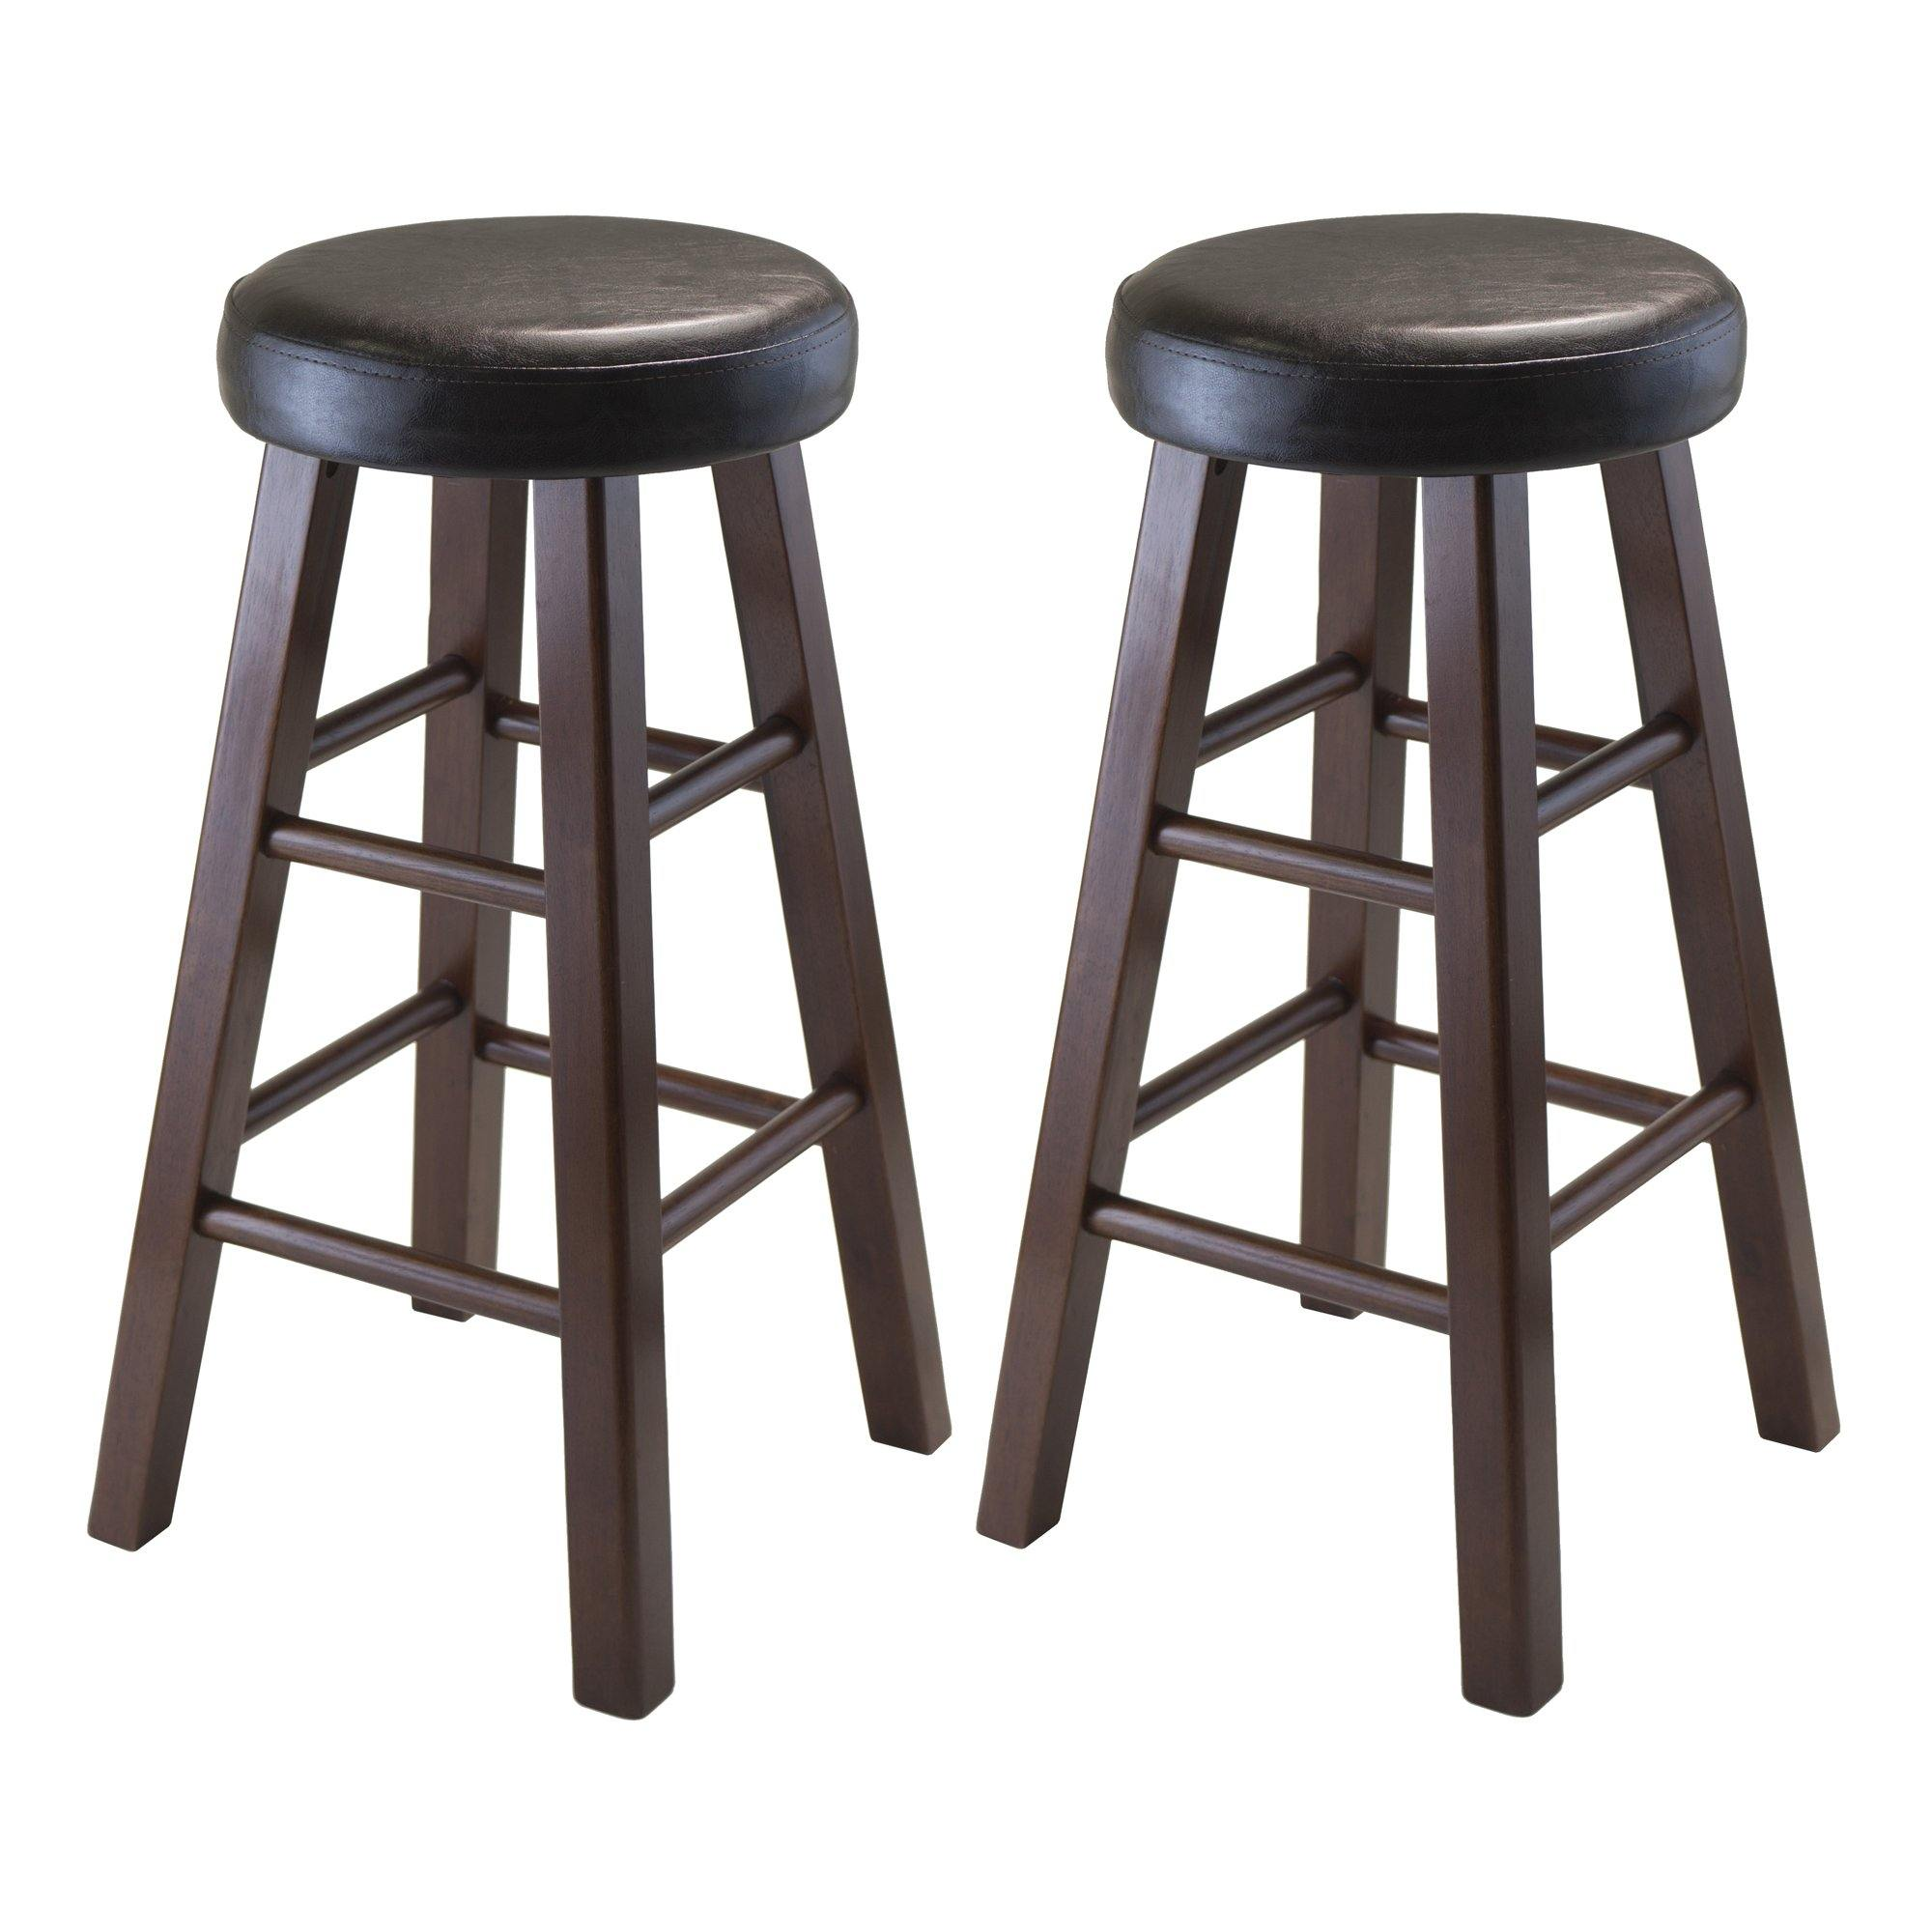 Marta Cushioned Counter Stools, 2-Pc Set, Espresso & Walnut - My USA Furniture